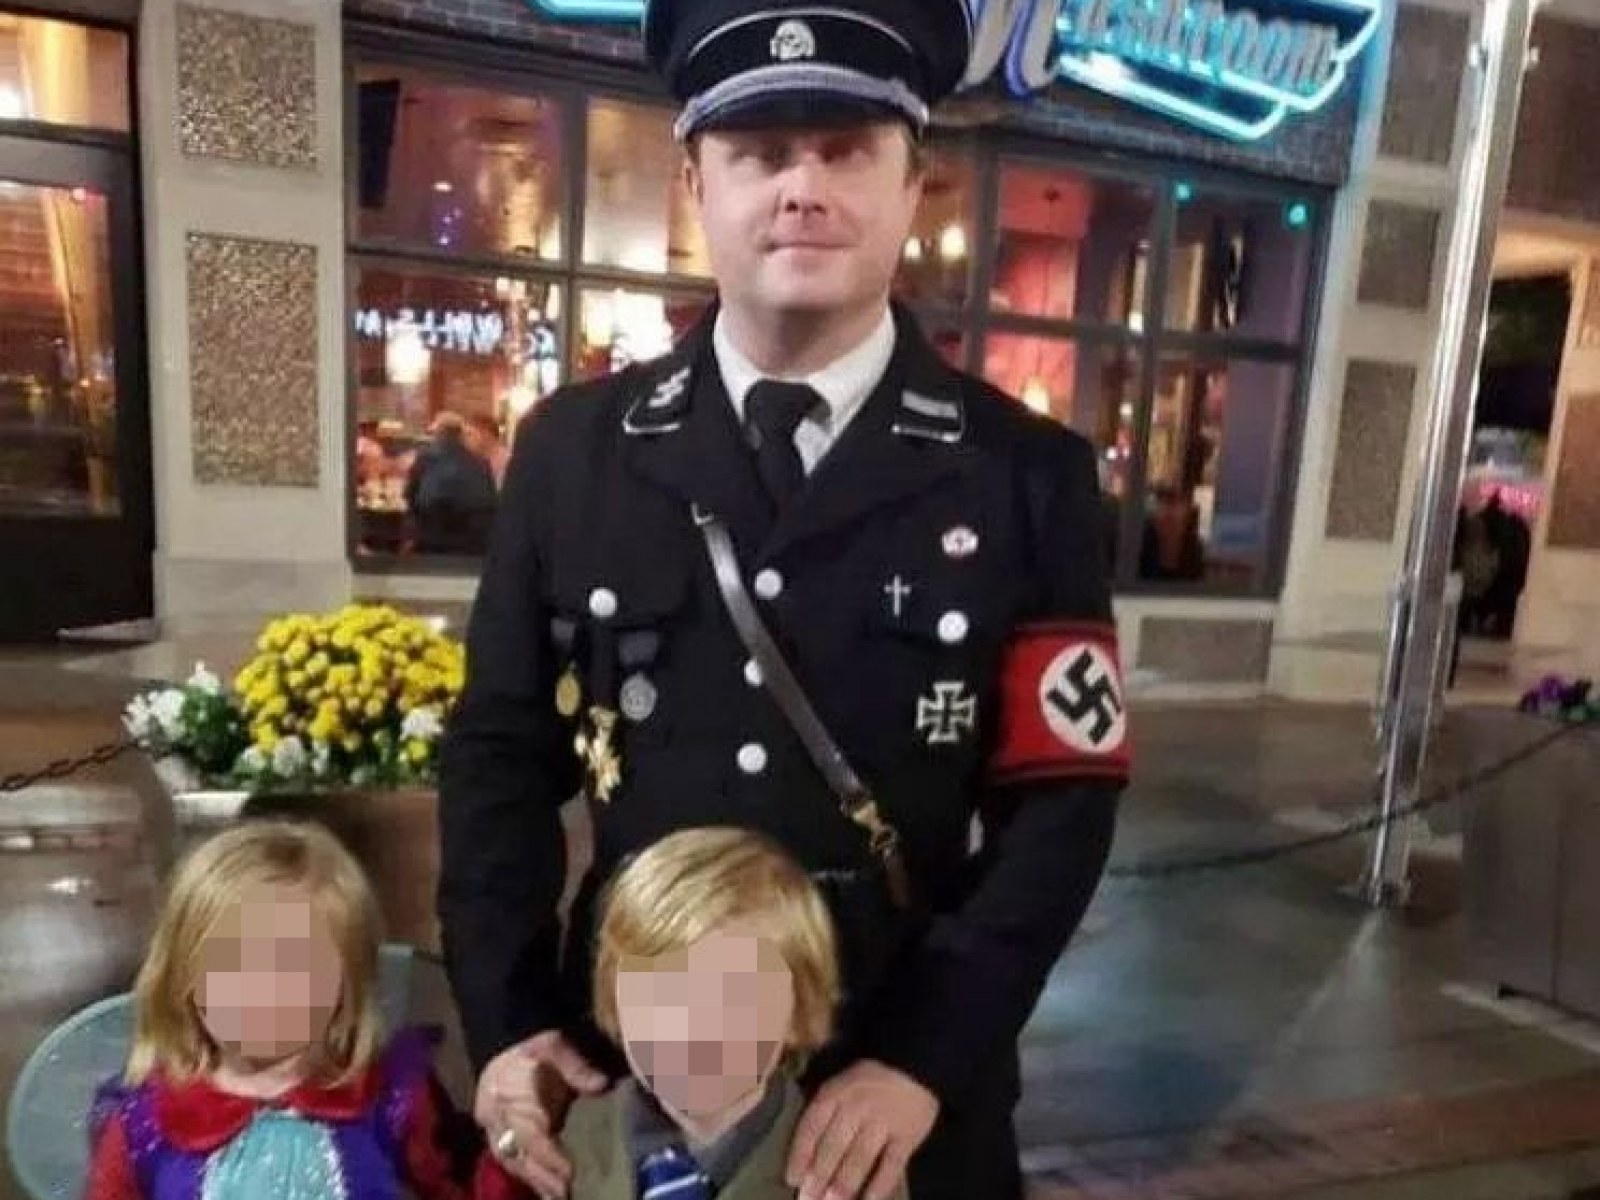 A Father Dressed His Son As Hitler For Halloween And Was